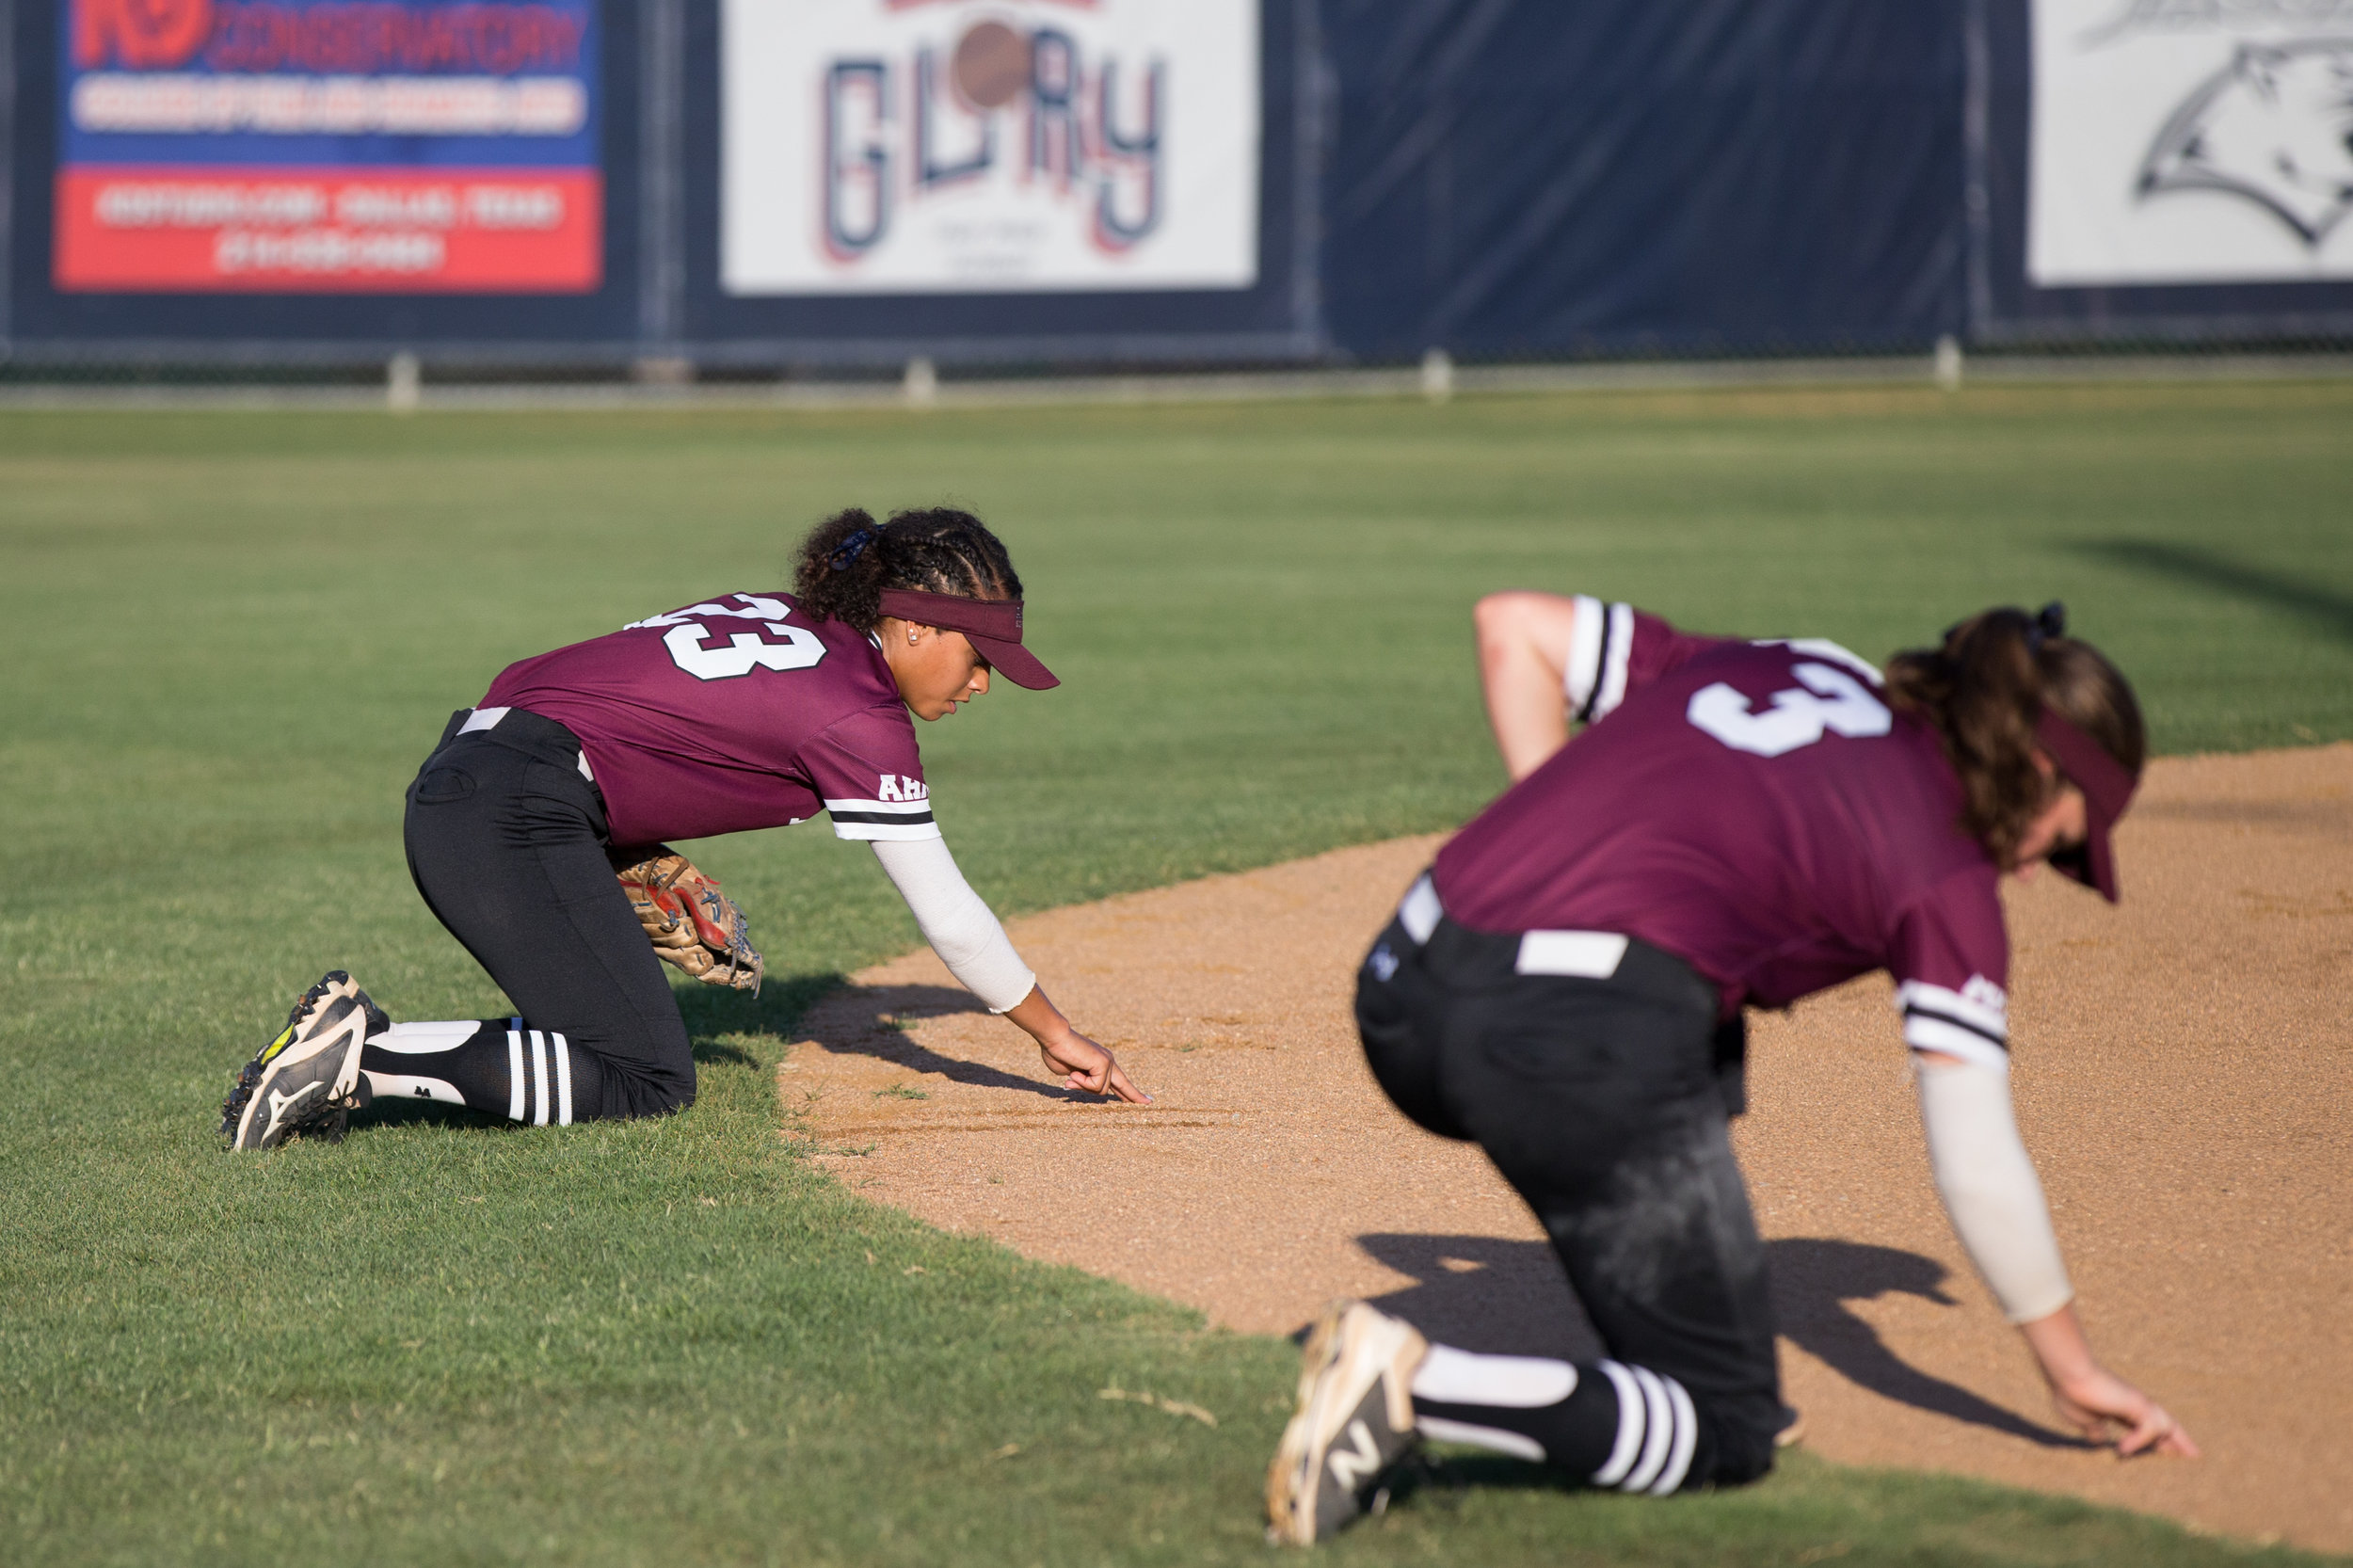 5_18 Wylie Softball-109.jpg